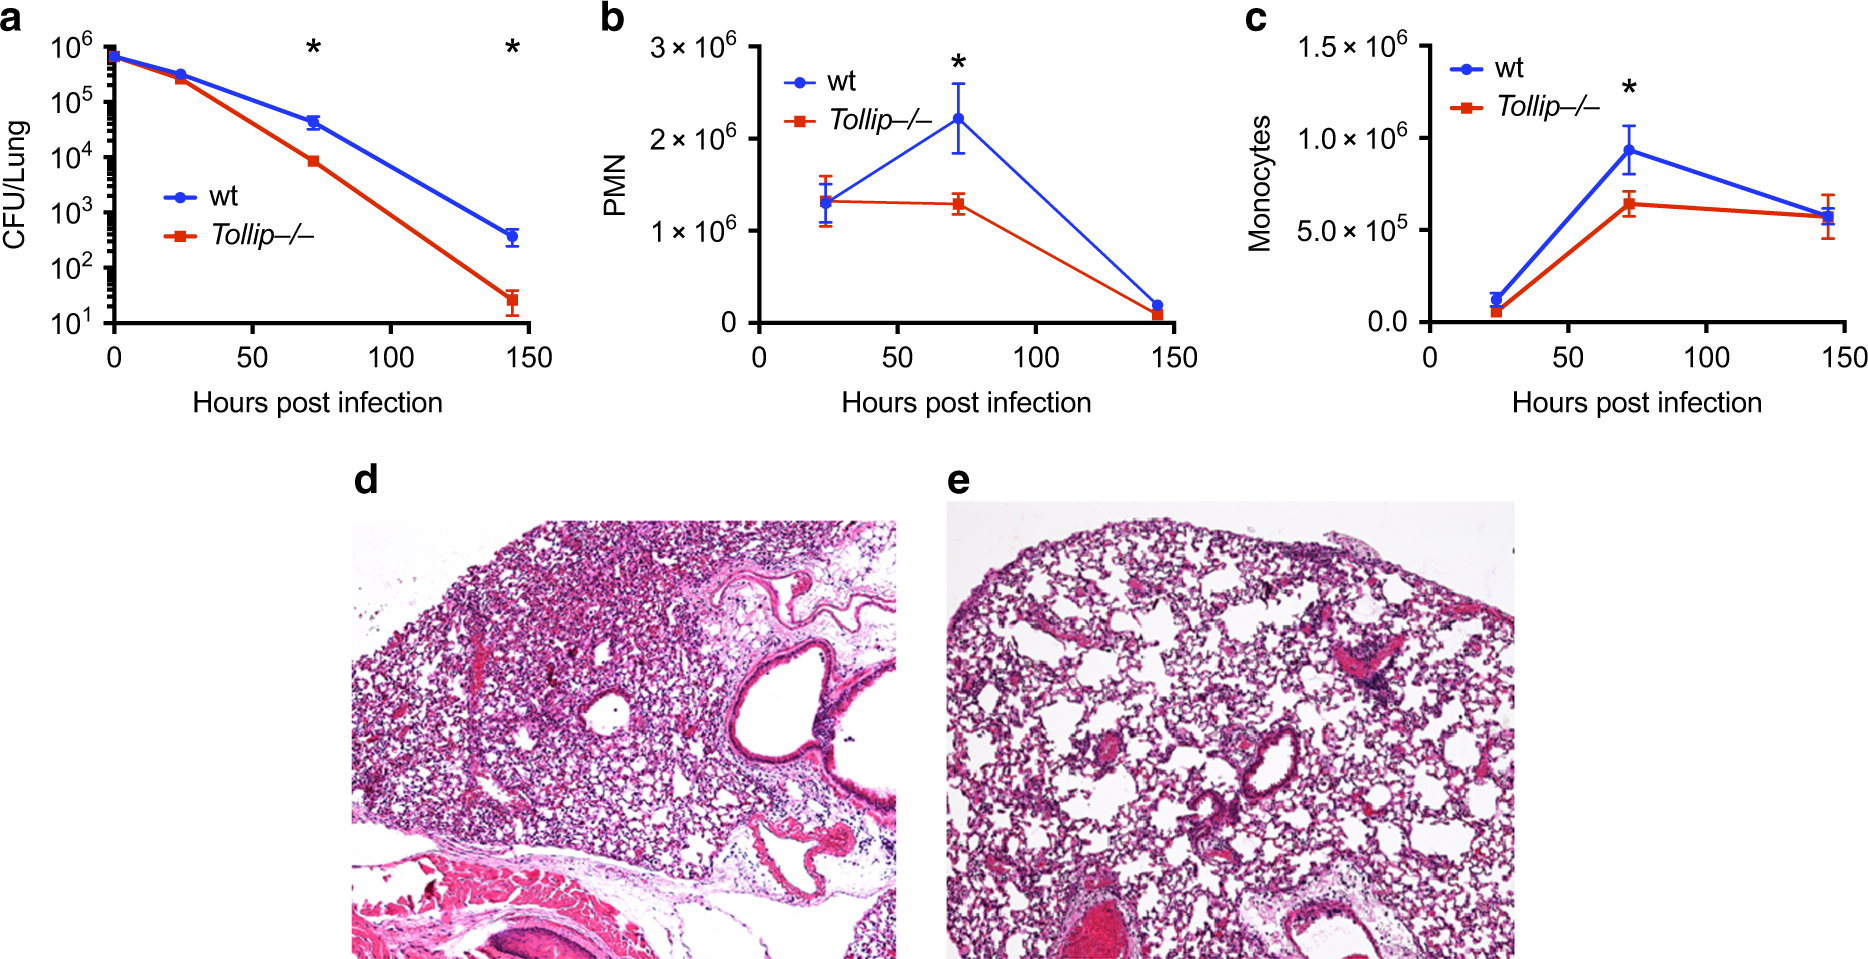 TOLLIP deficiency is associated with increased resistance to Legionell